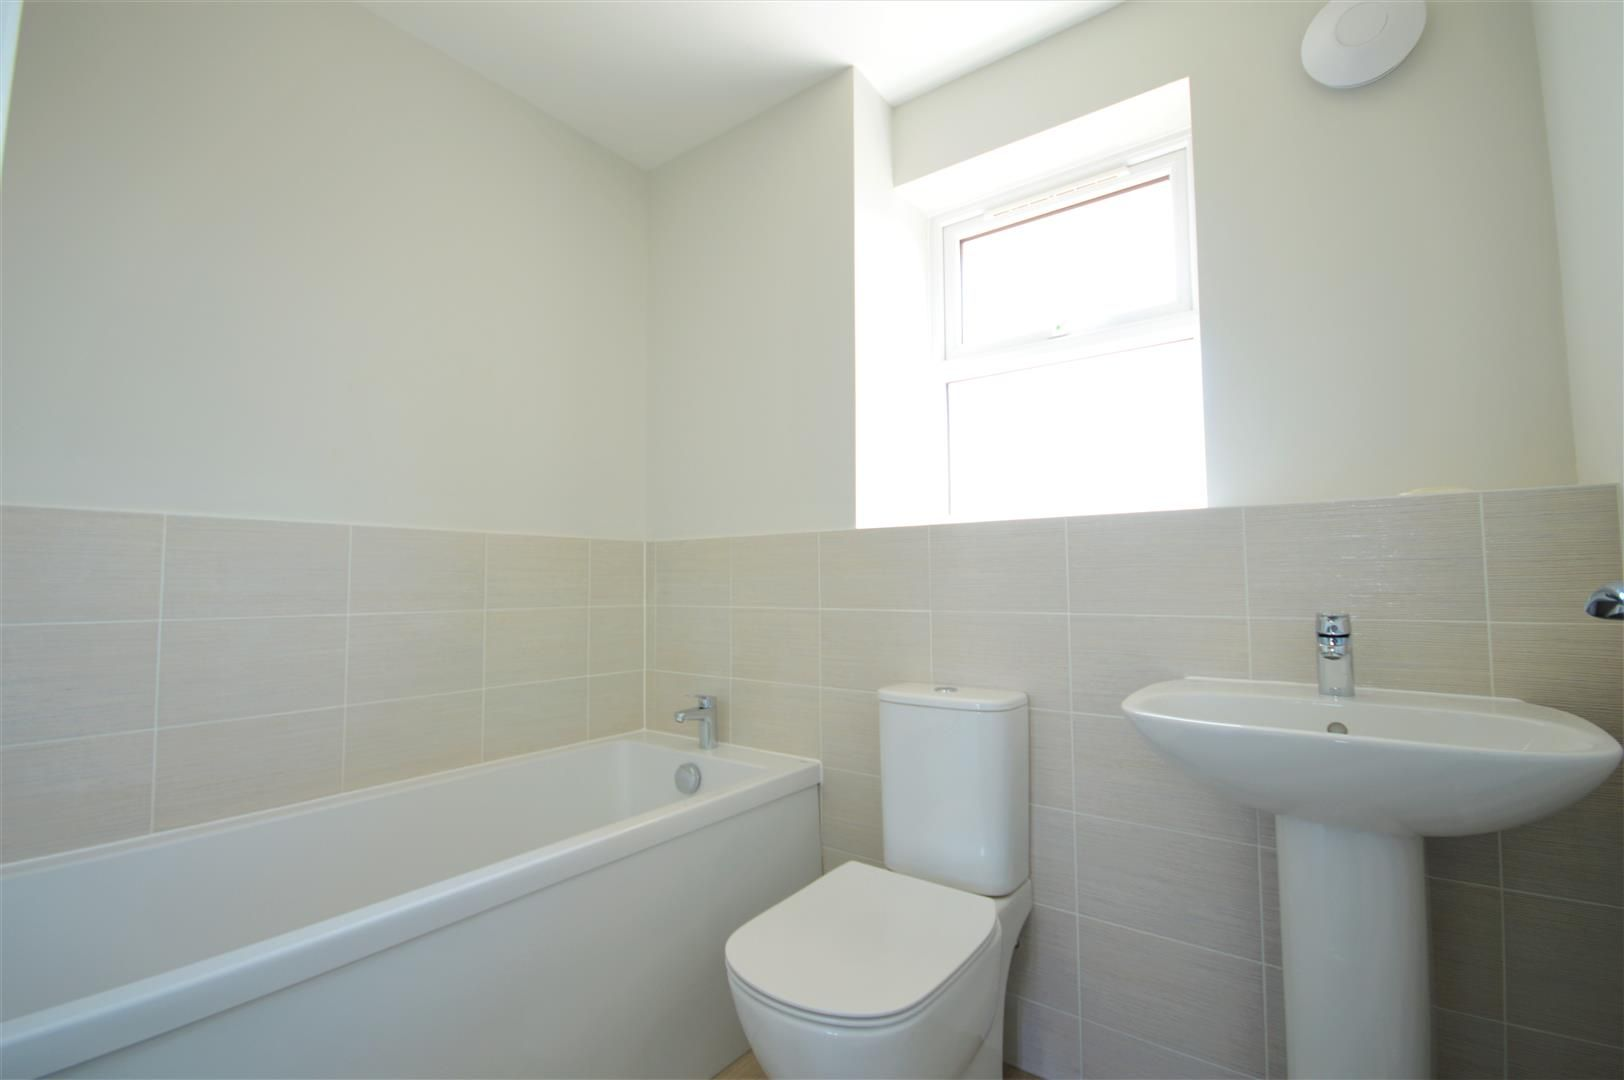 3 bed detached for sale in Kingstone 6